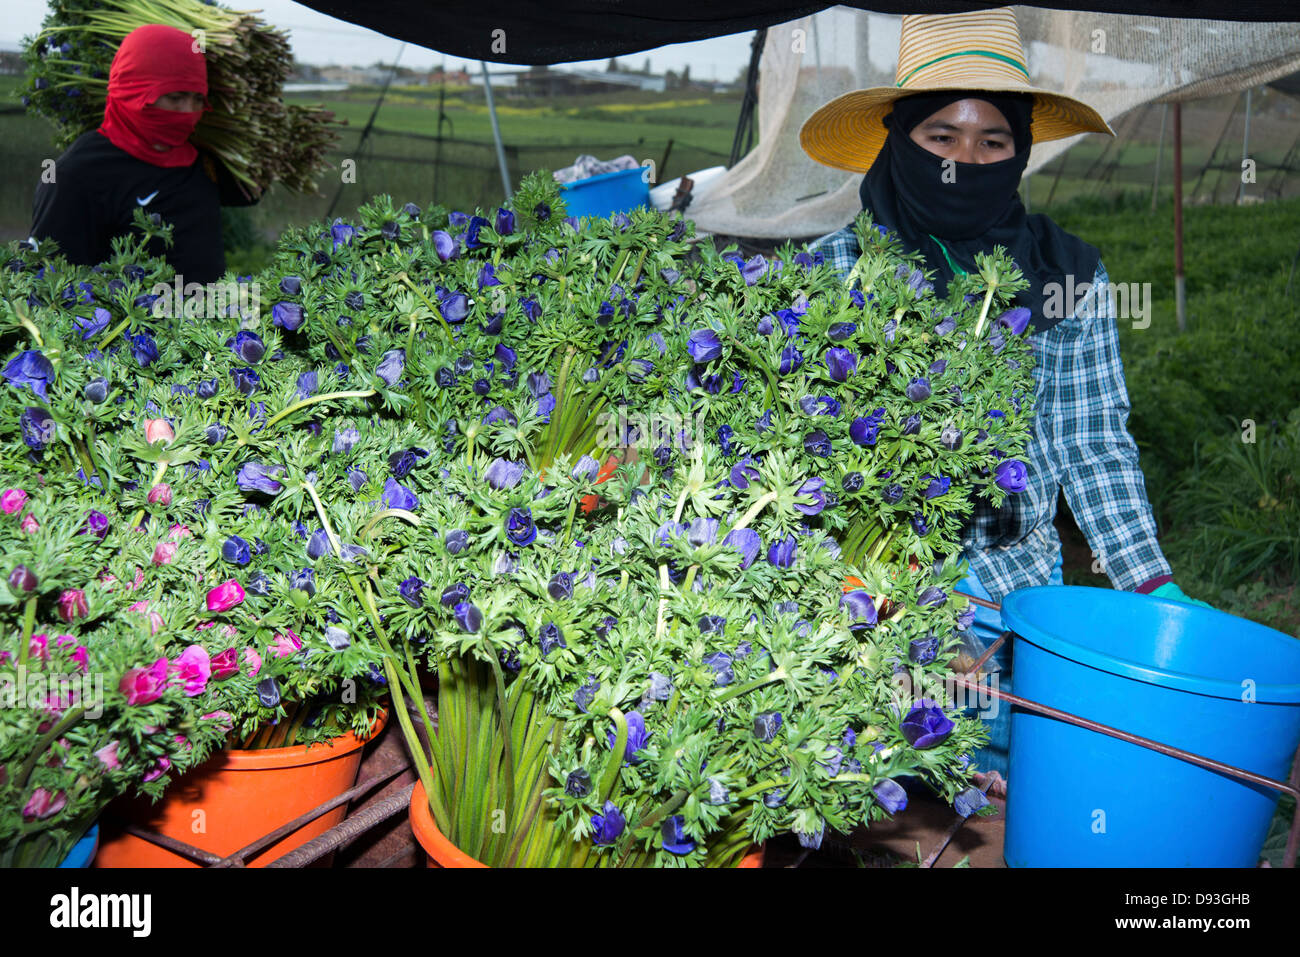 Flower export. Thai migrant works pick flowers in a hothouse Photographed in israel - Stock Image